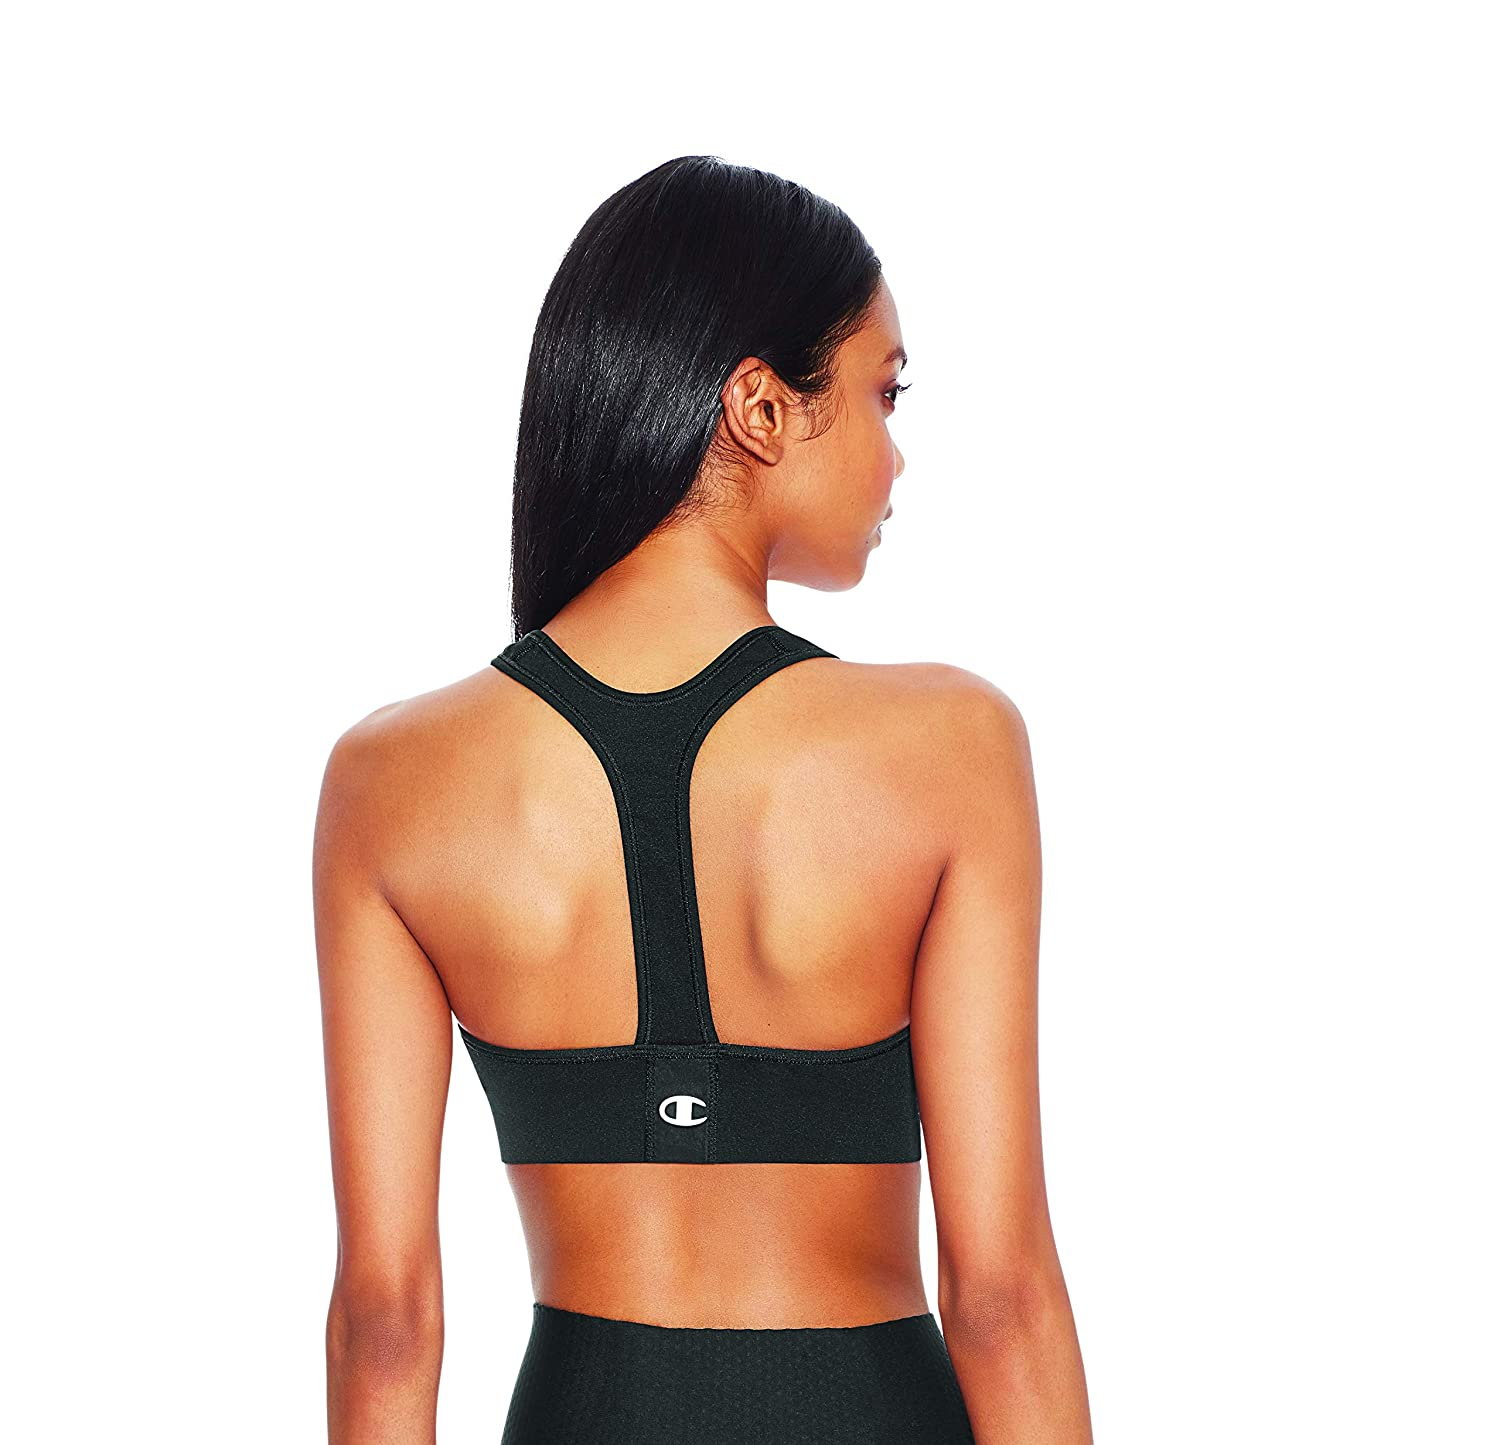 a217e4996 Champion Absolute Sports Bra With SmoothTec Band at Amazon Women s Clothing  store